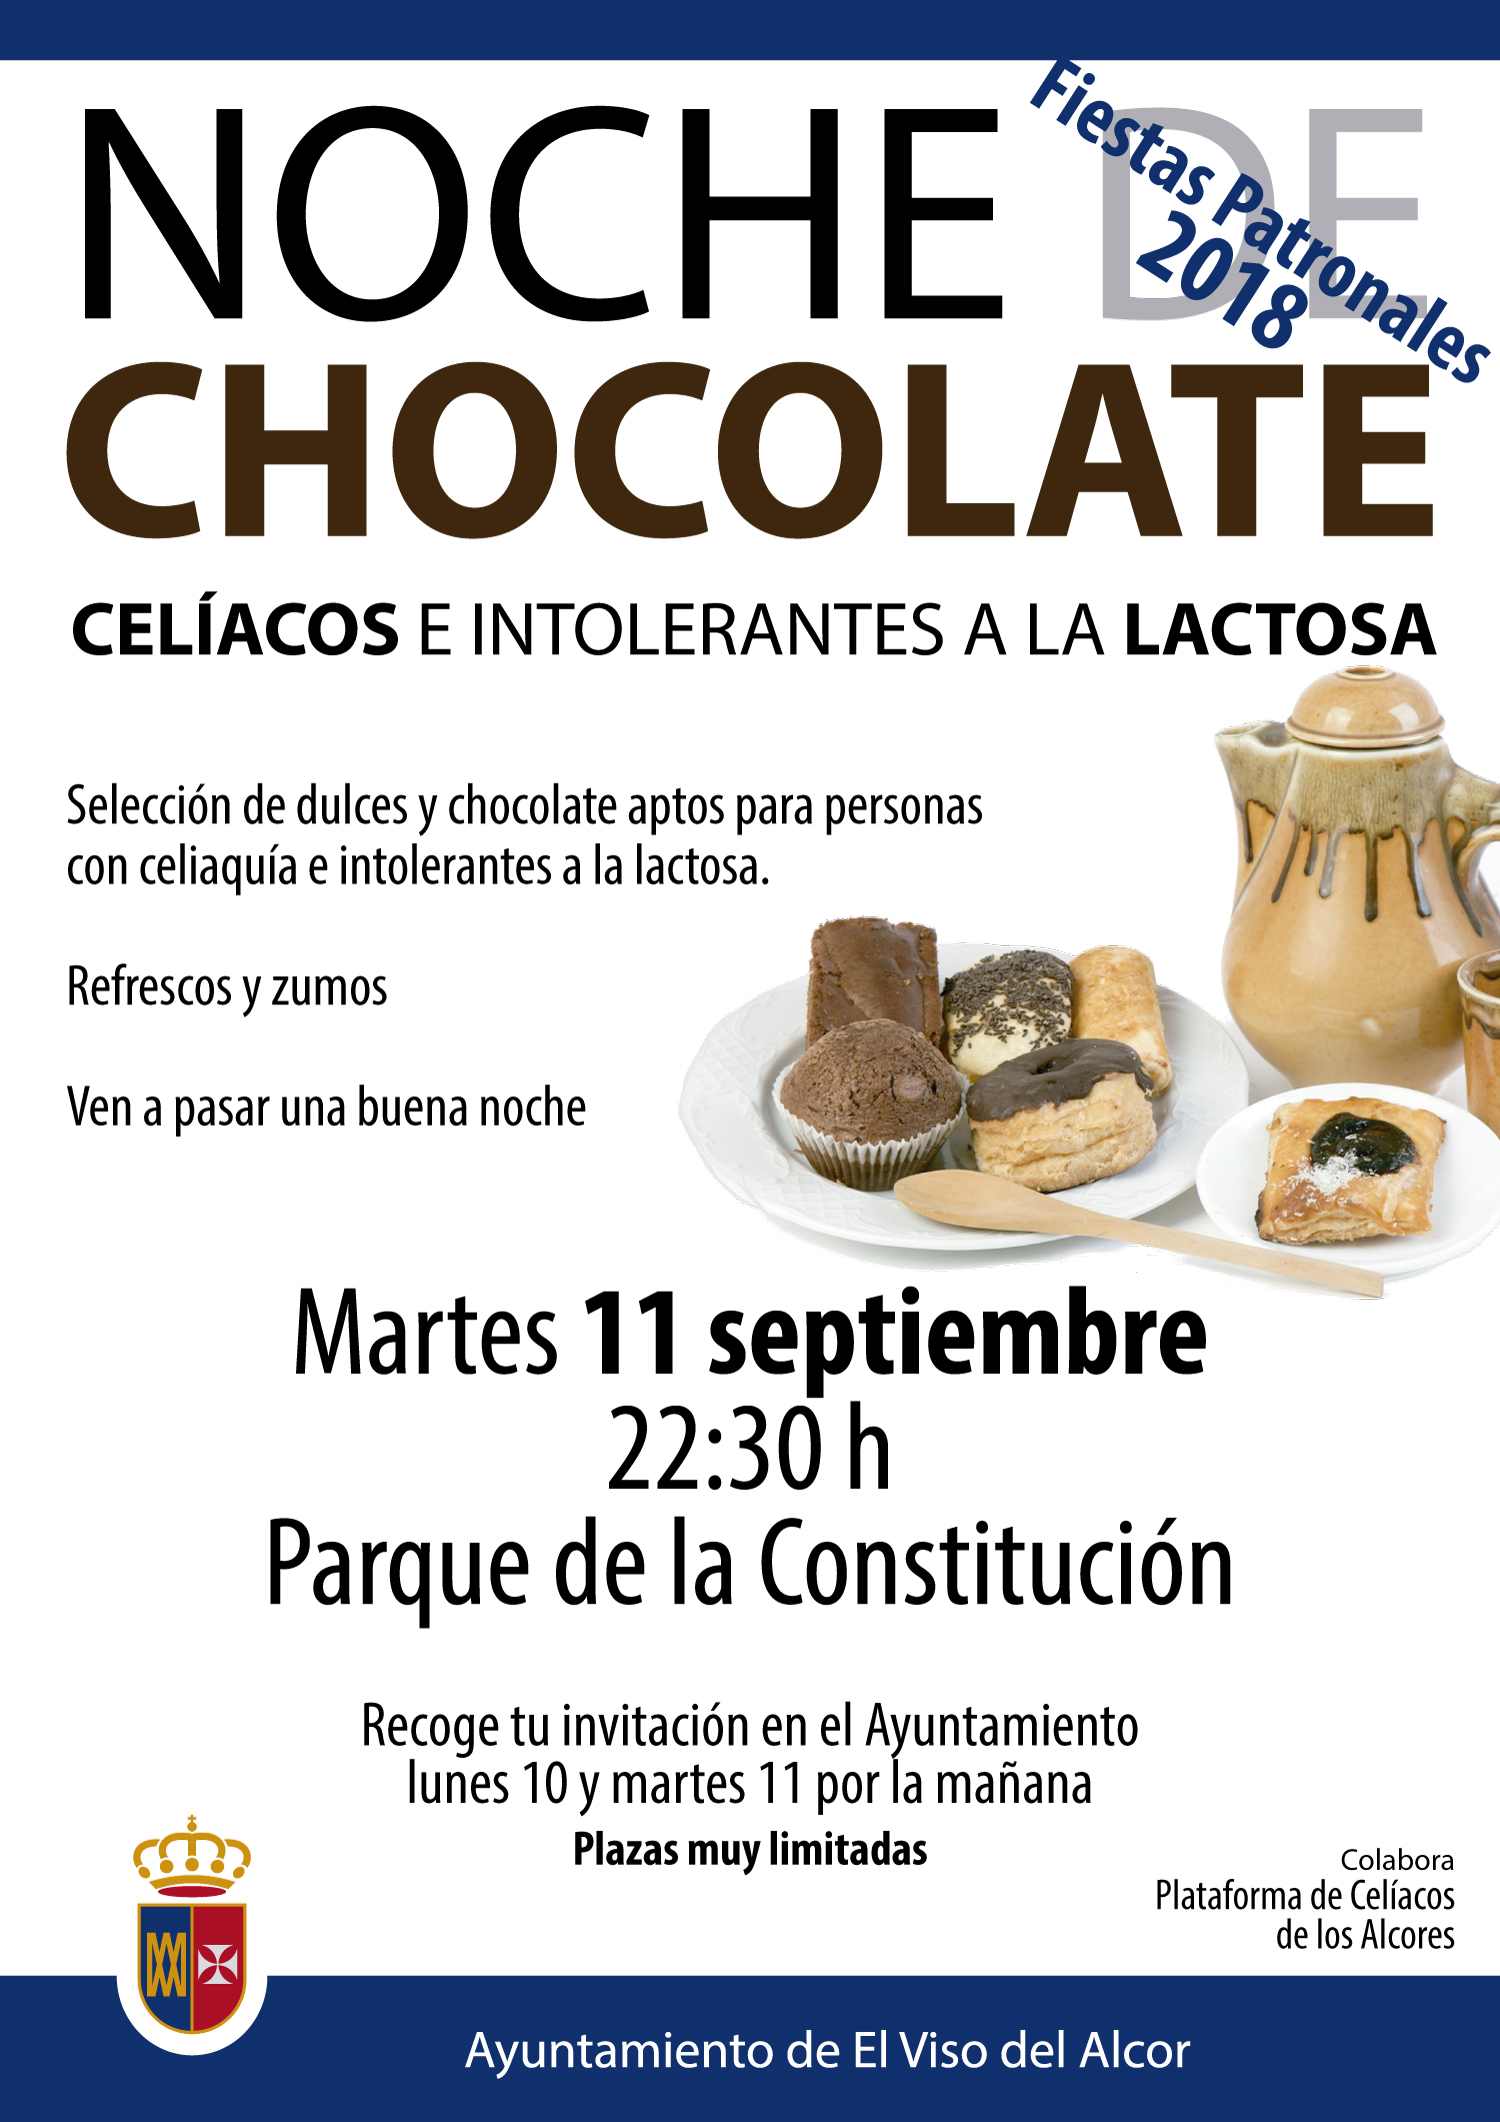 cartelChocolate2018celiacos